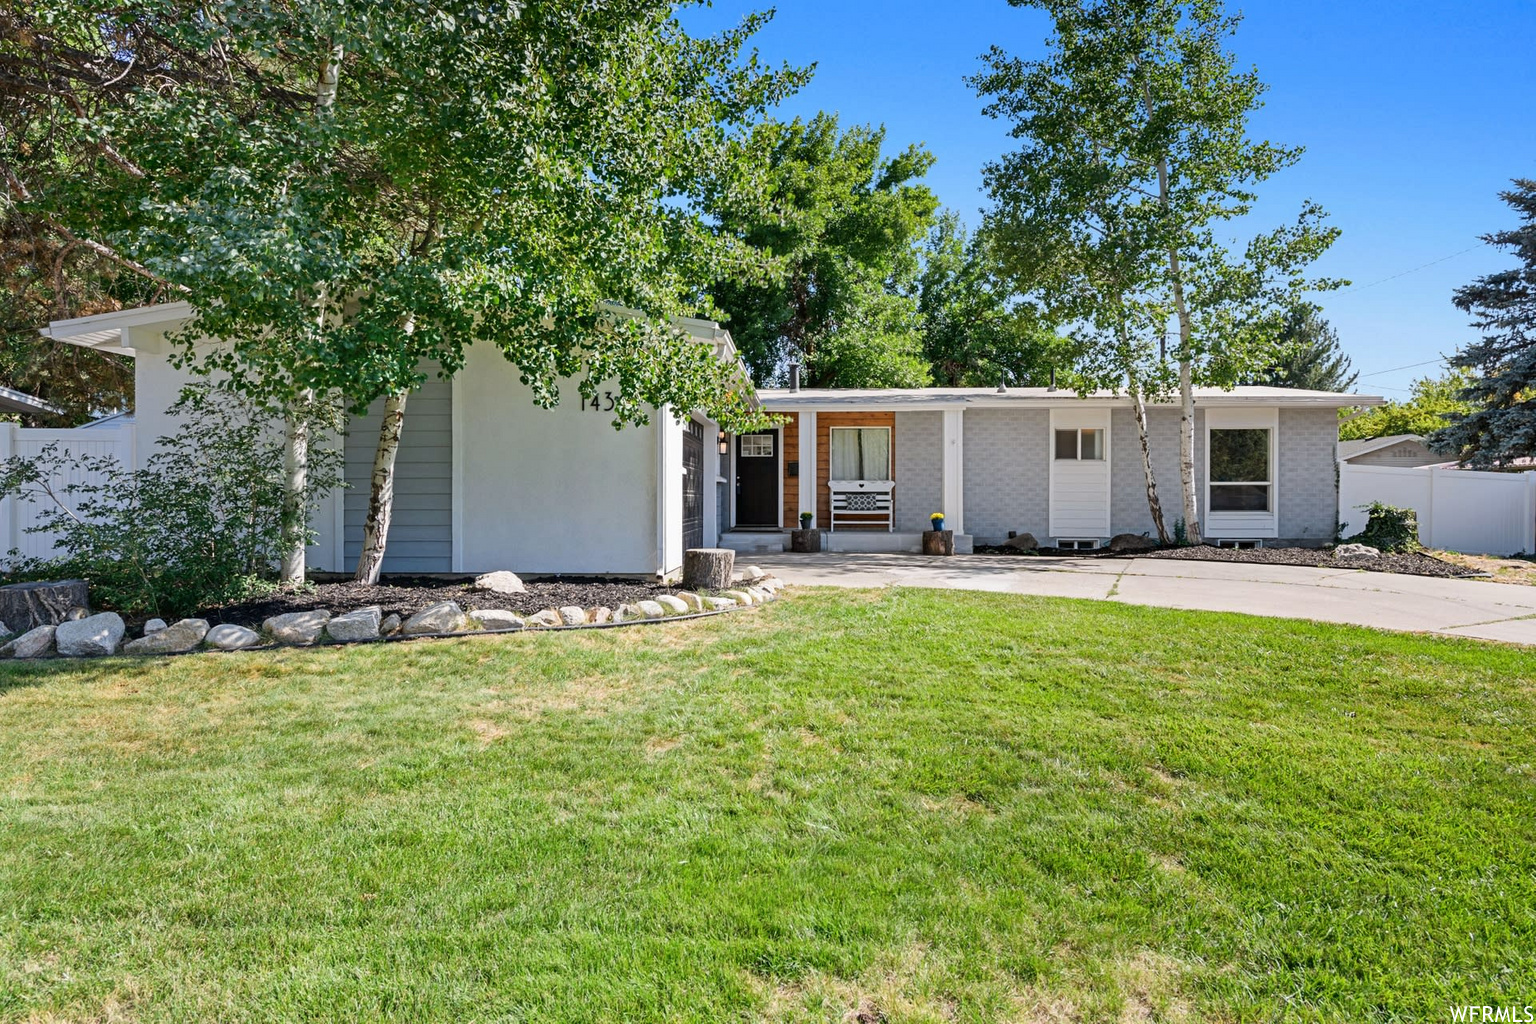 1430 E 6400 S, Salt Lake City UT 84121